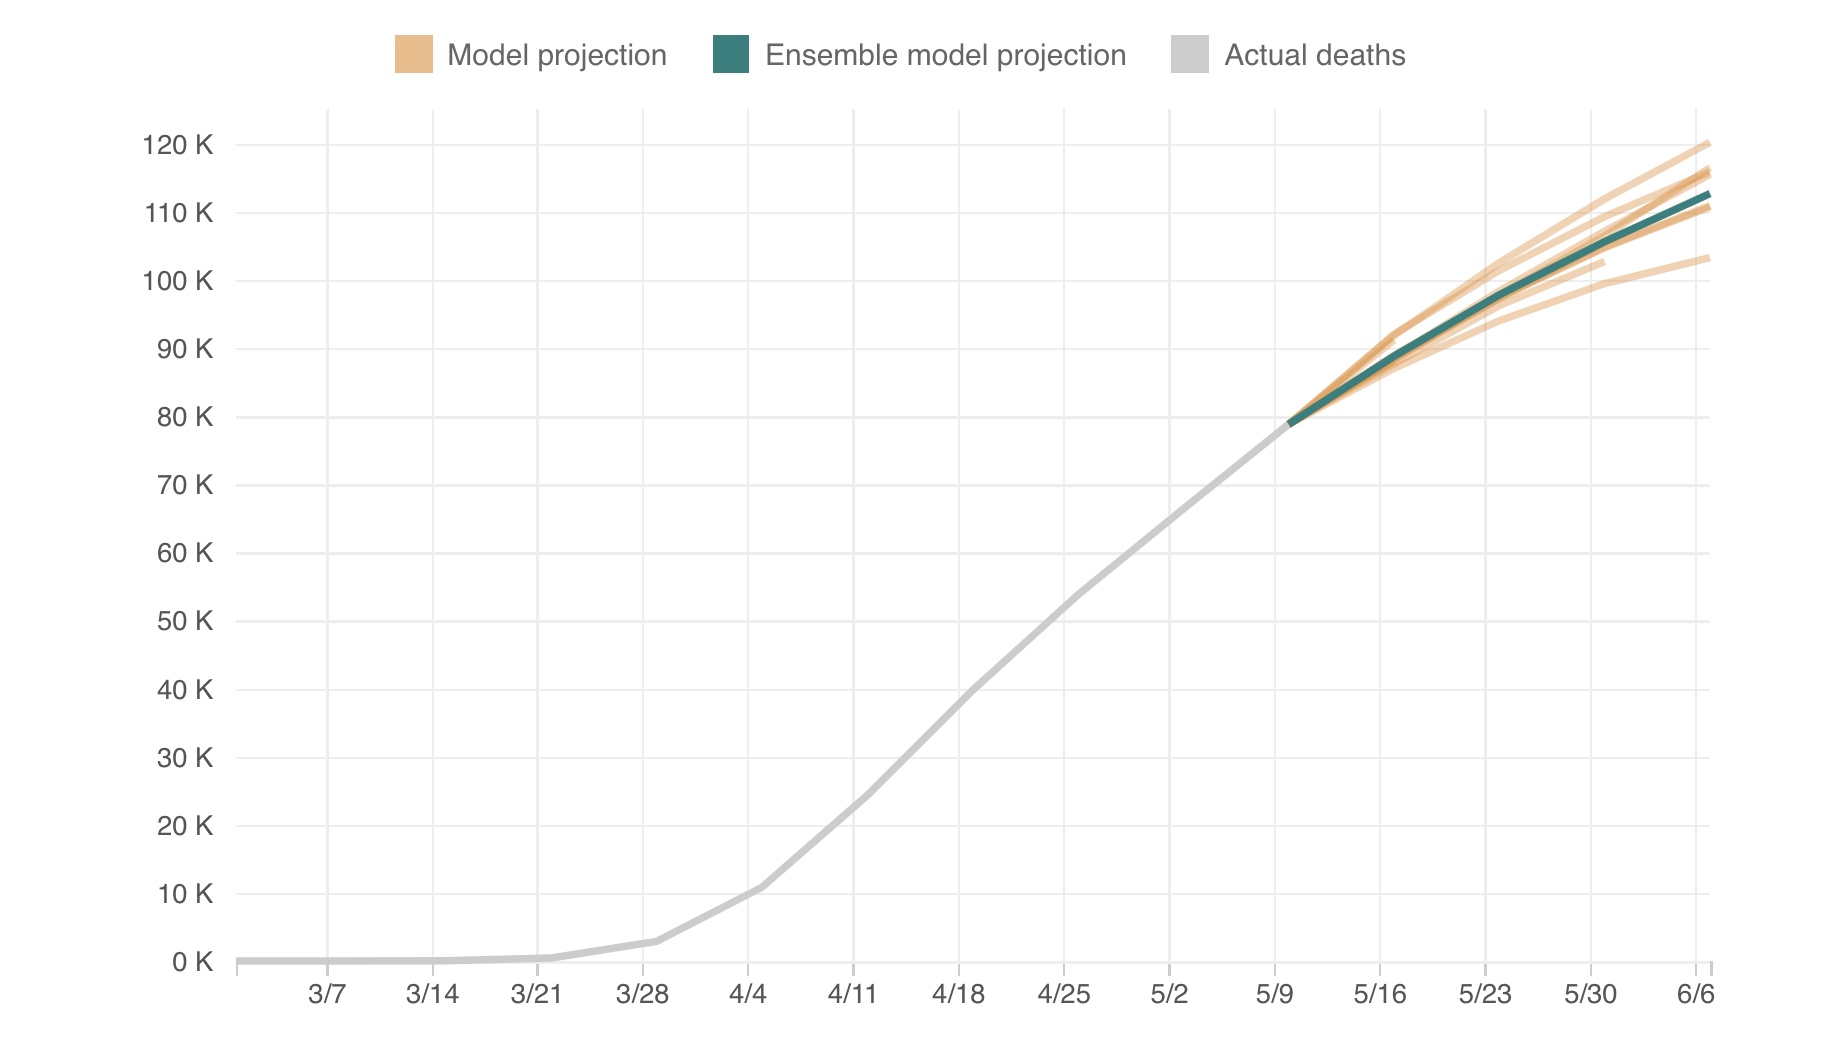 How To Make Sense Of All The Covid 19 Projections A New Model Combines Them Shots Health News Npr